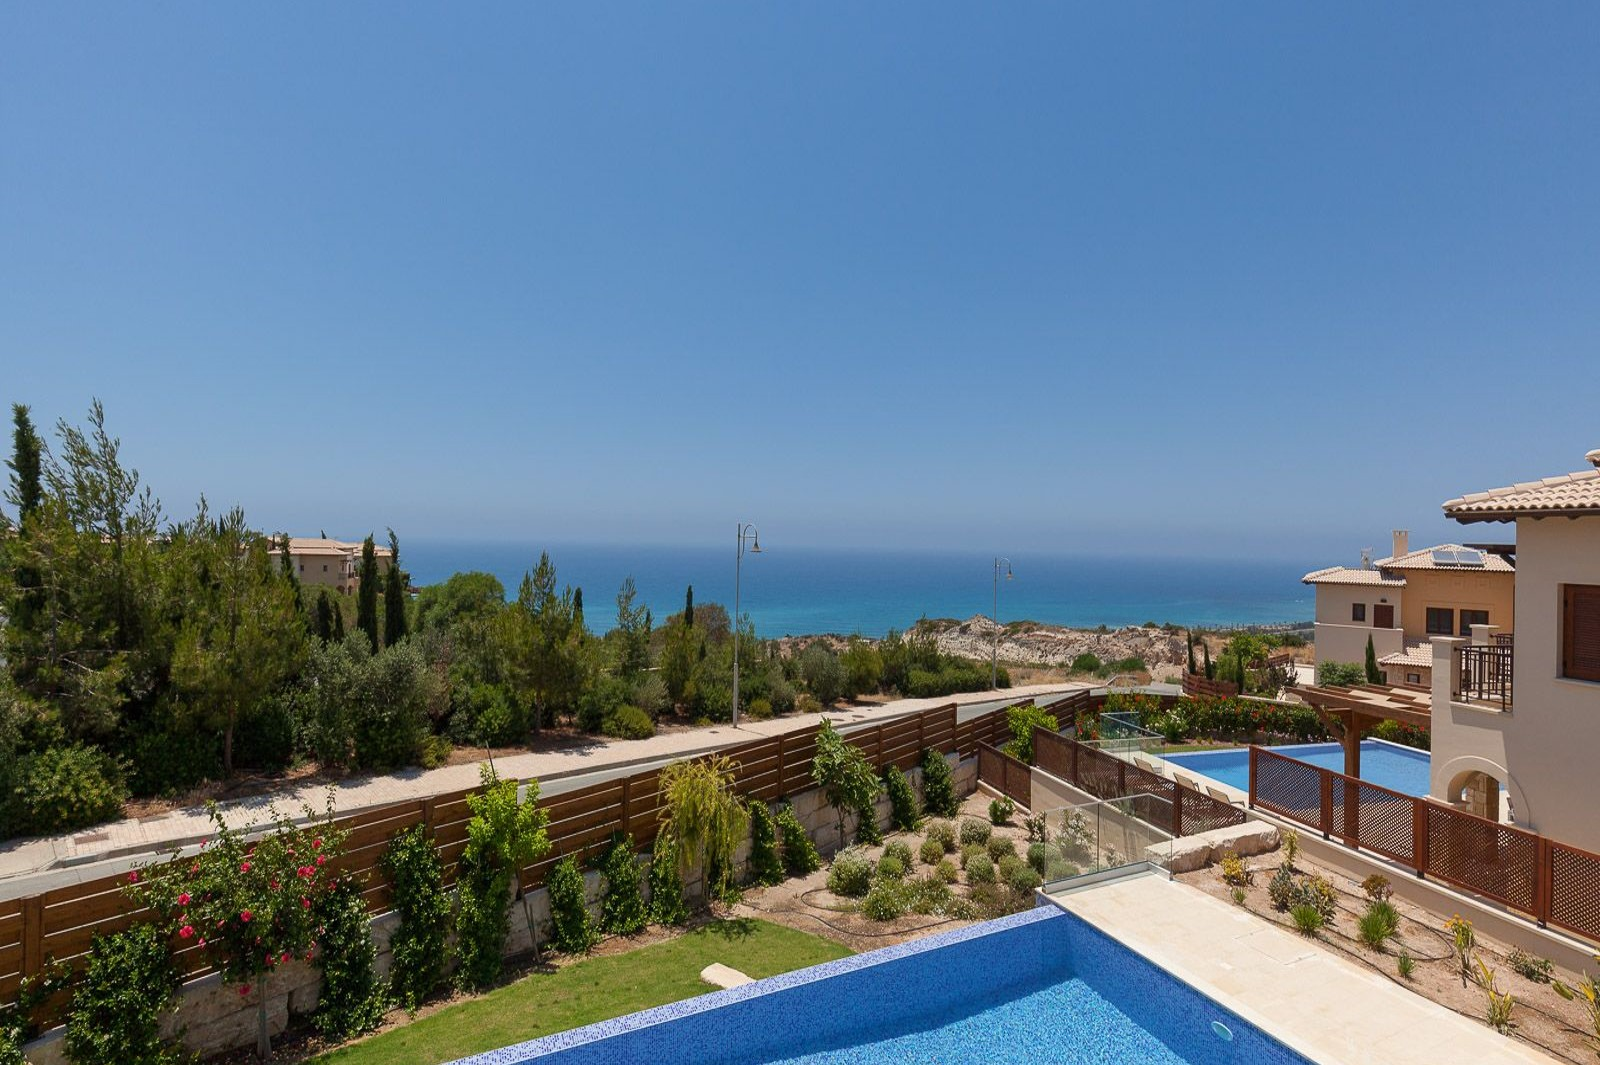 Villa with pool for rent in Cyprus